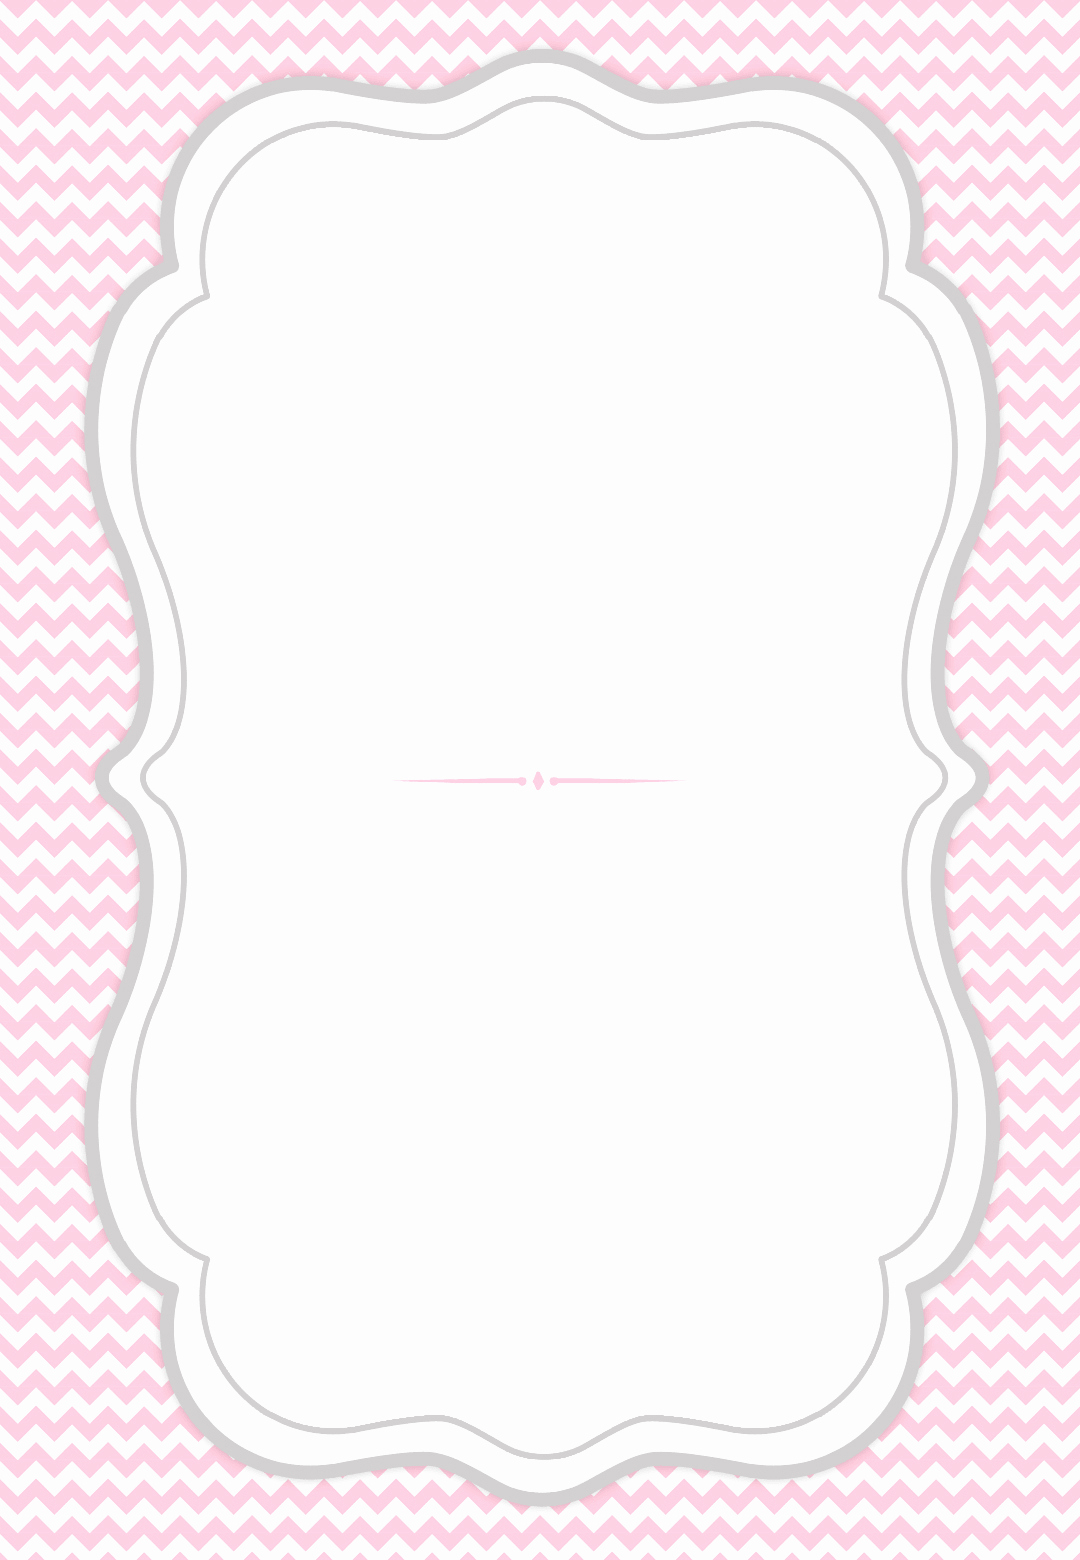 Free Printable Invitations Templates Fresh French Curve Frame Free Printable Party Invitation